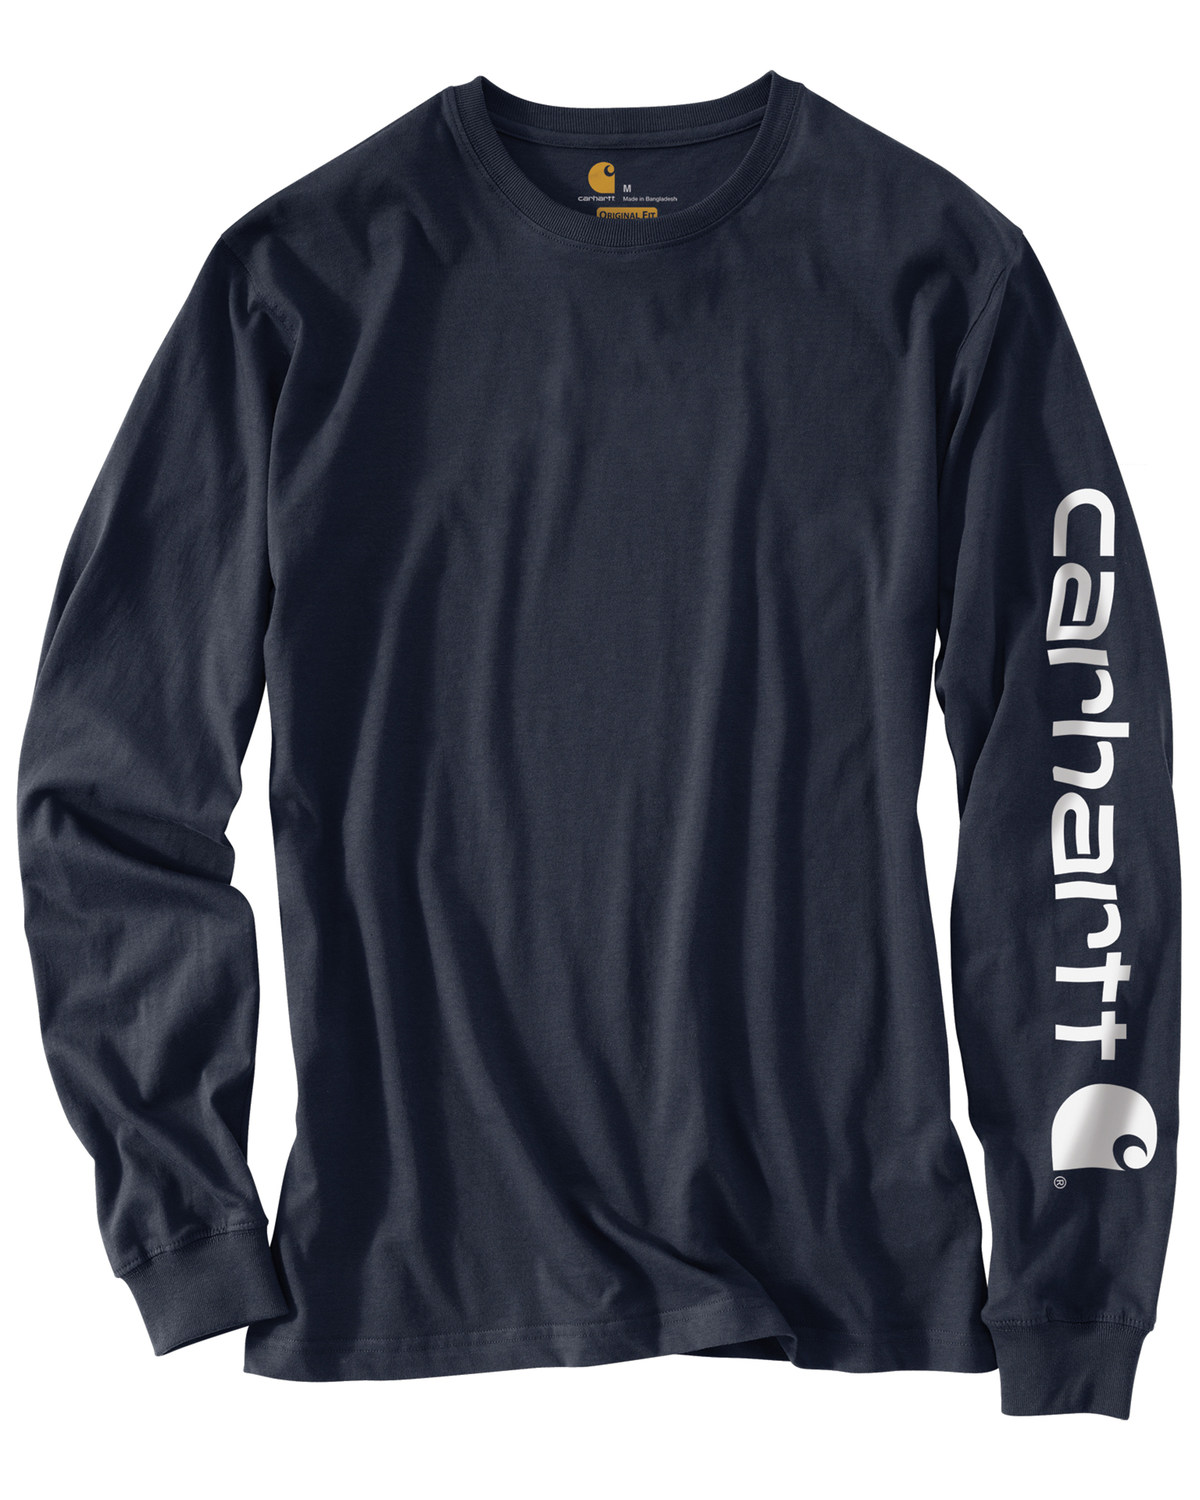 375f1e1eb Zoomed Image Carhartt Men's Long Sleeve Graphic T-Shirt, Navy, ...